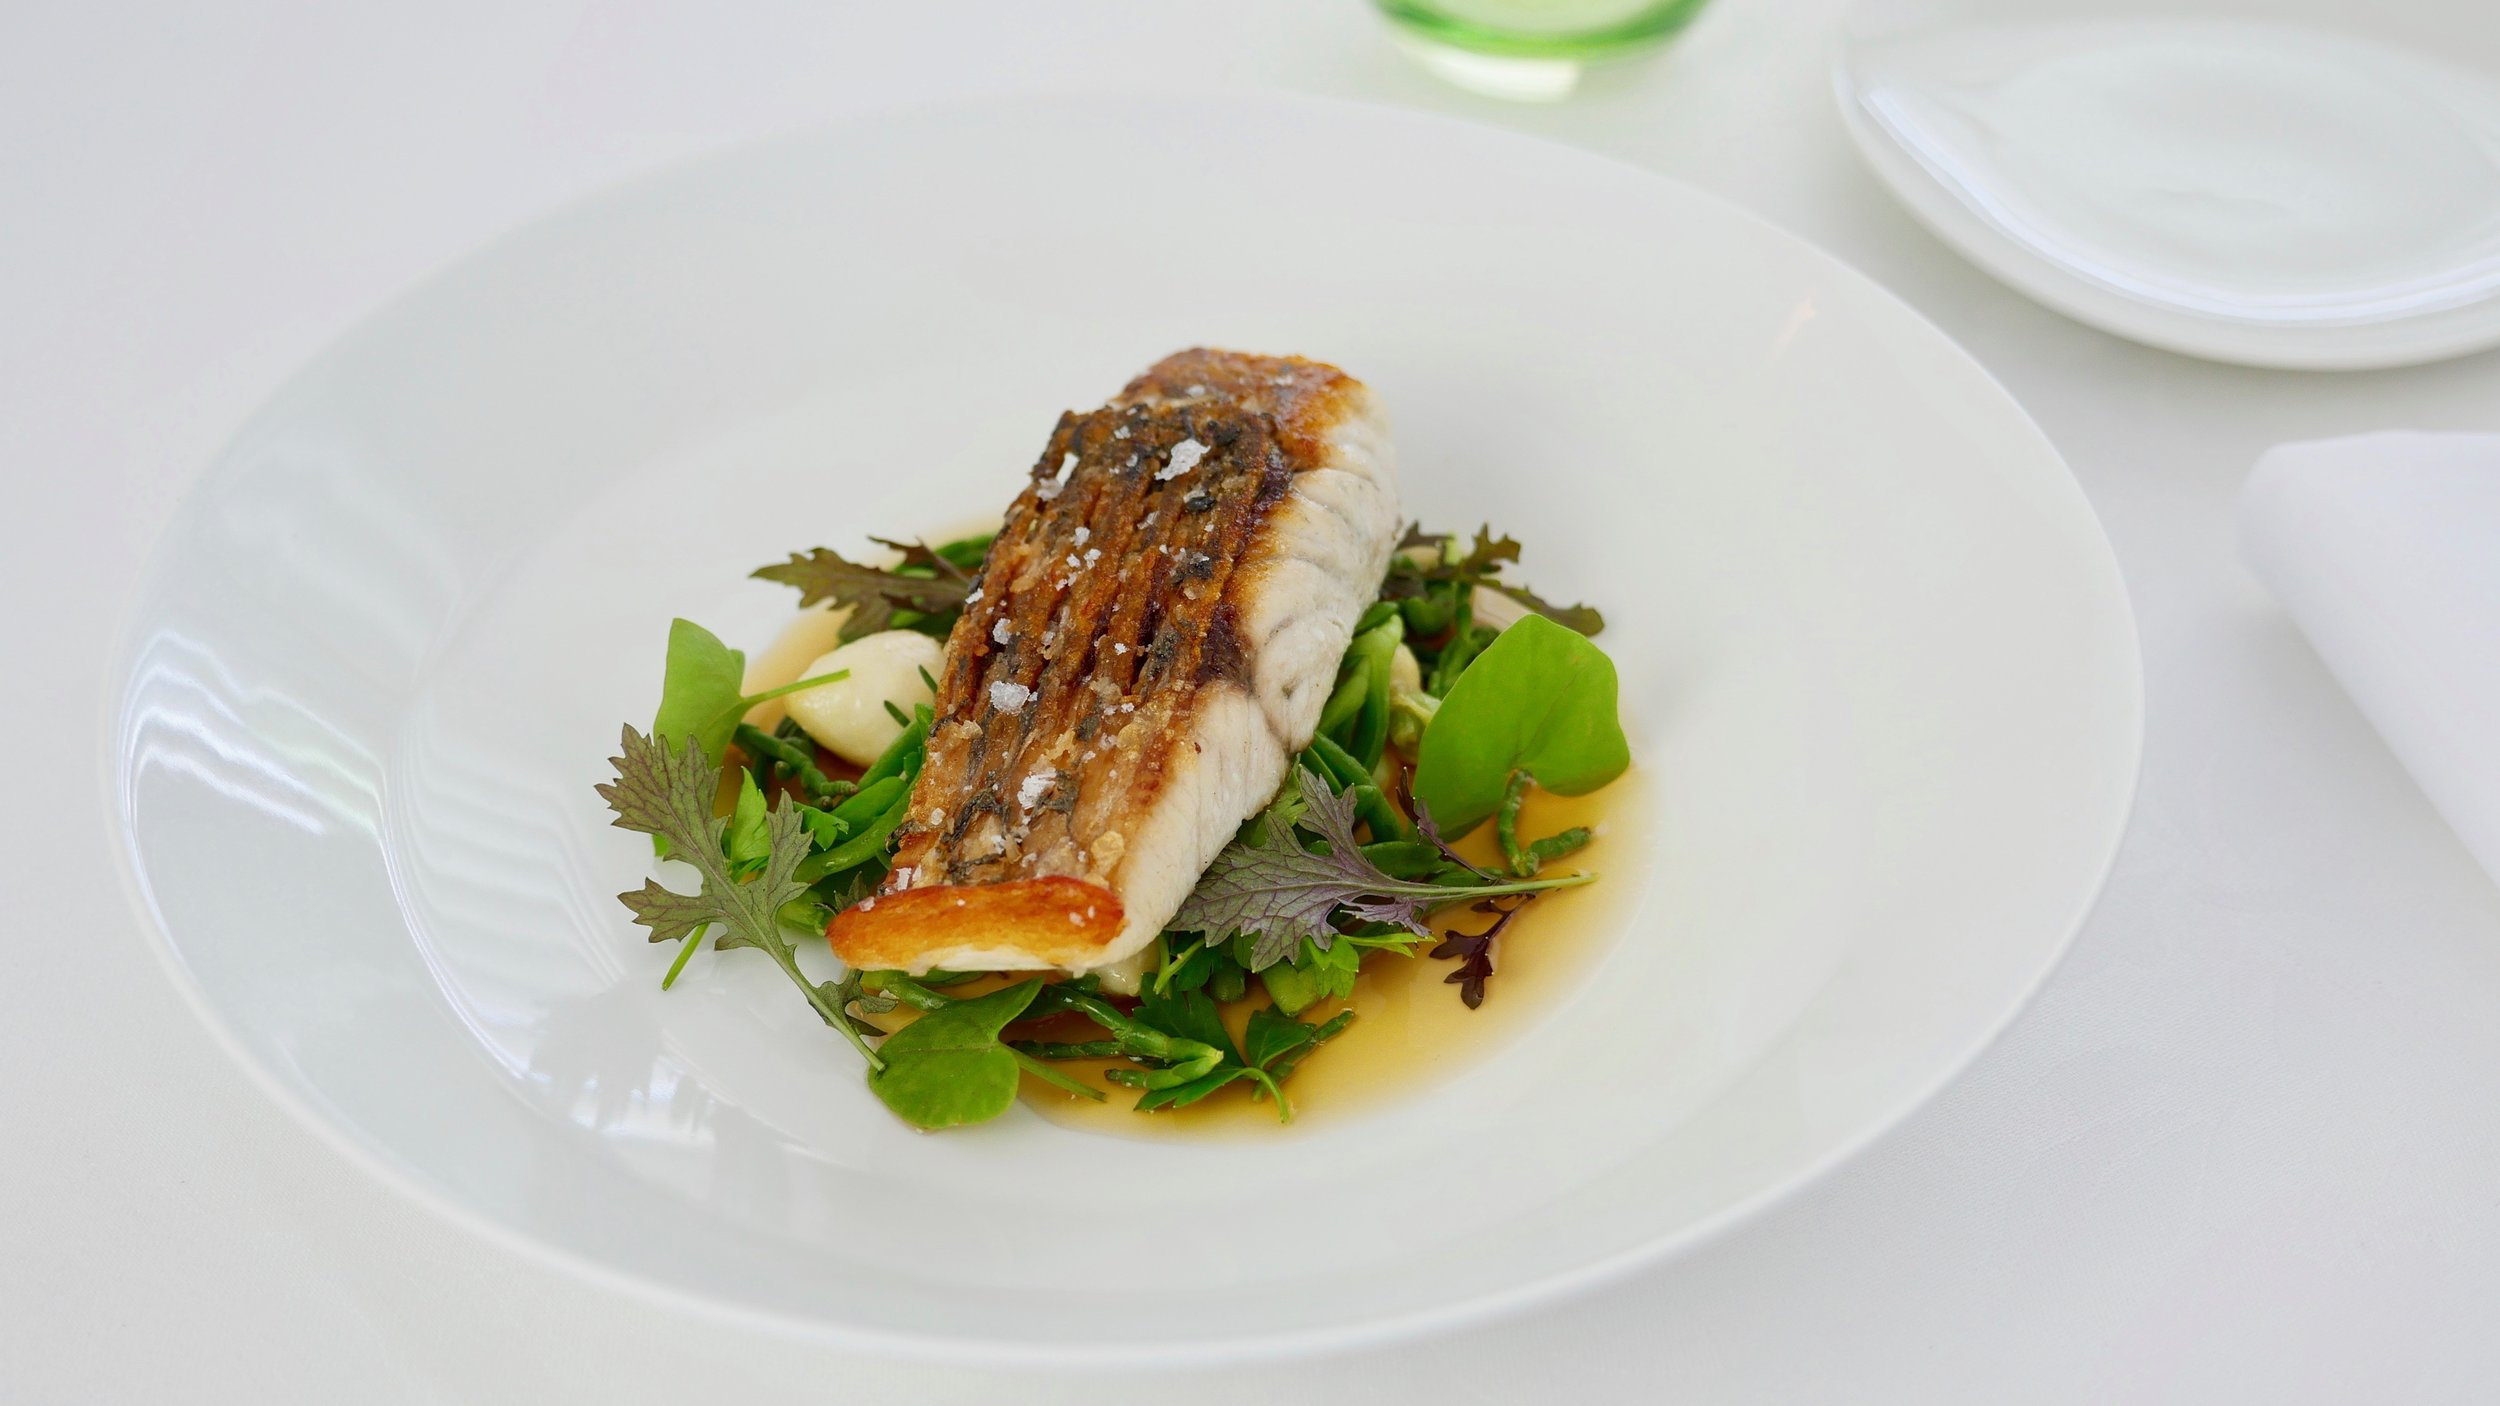 CONE BAY BARRAMUNDI, GARLIC MILK, BABY TURNIPS, SEA HERBS, SMOKED CONSOMME